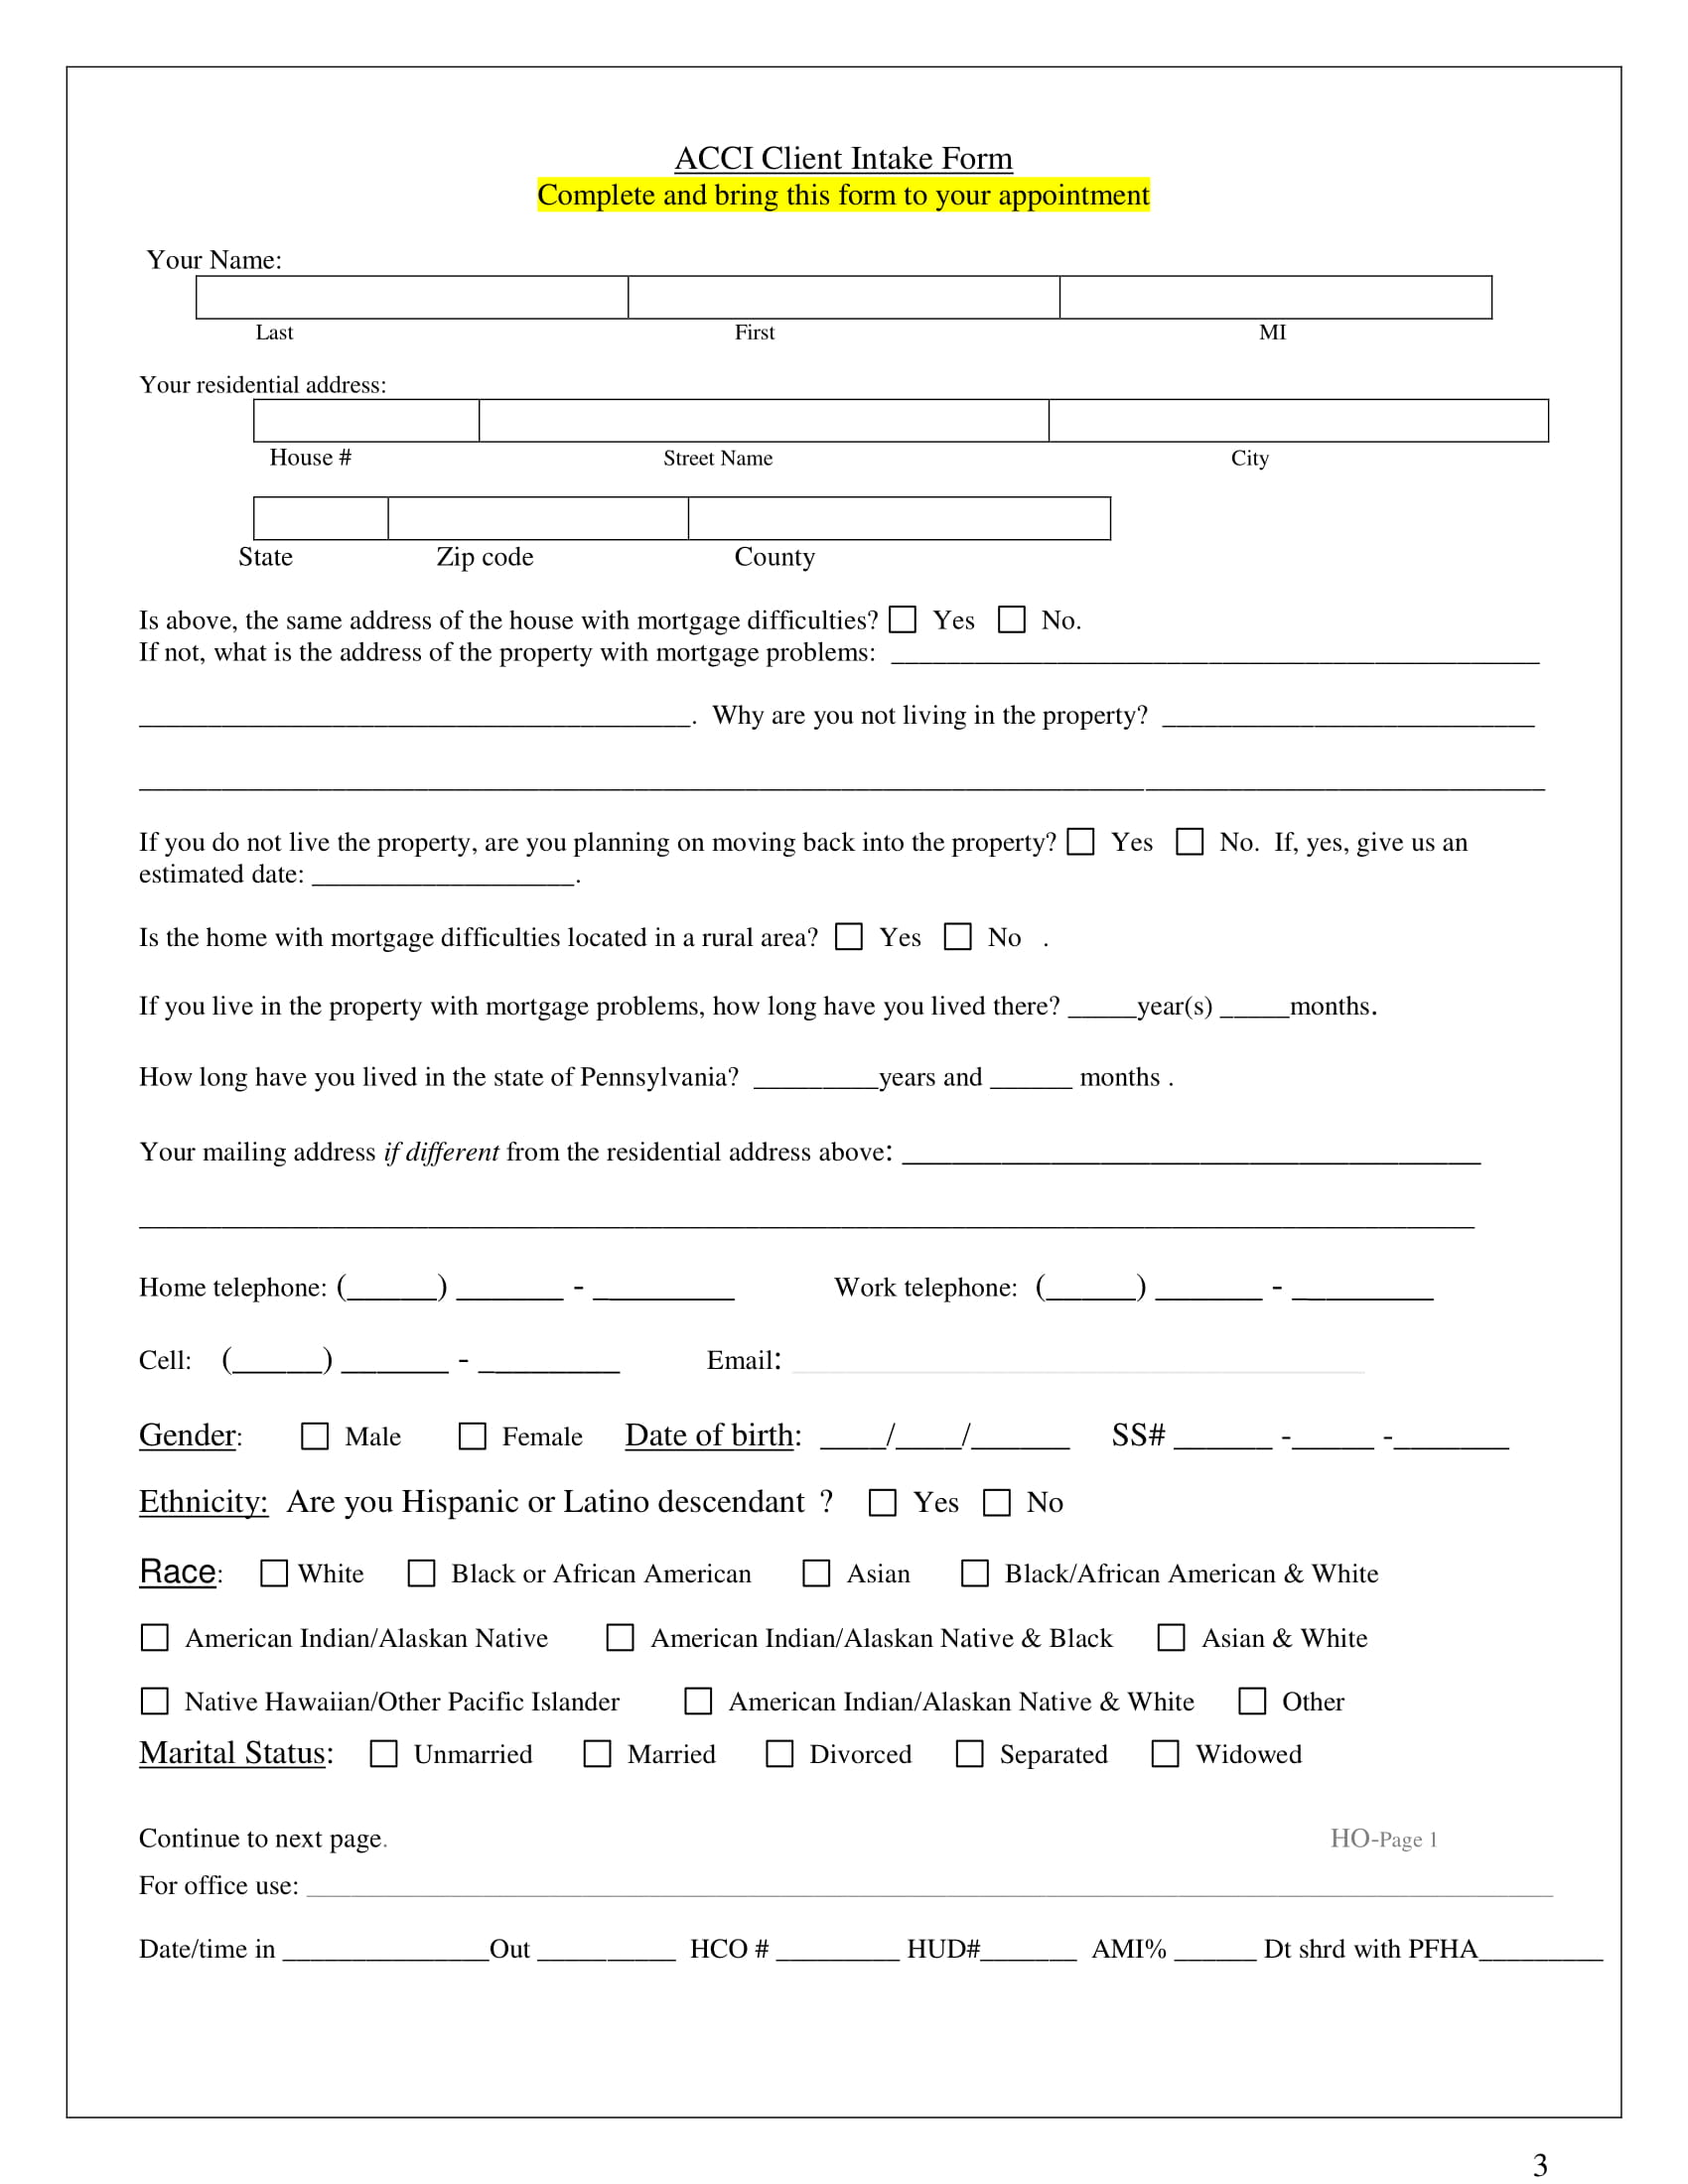 foreclosure counseling intake form 03